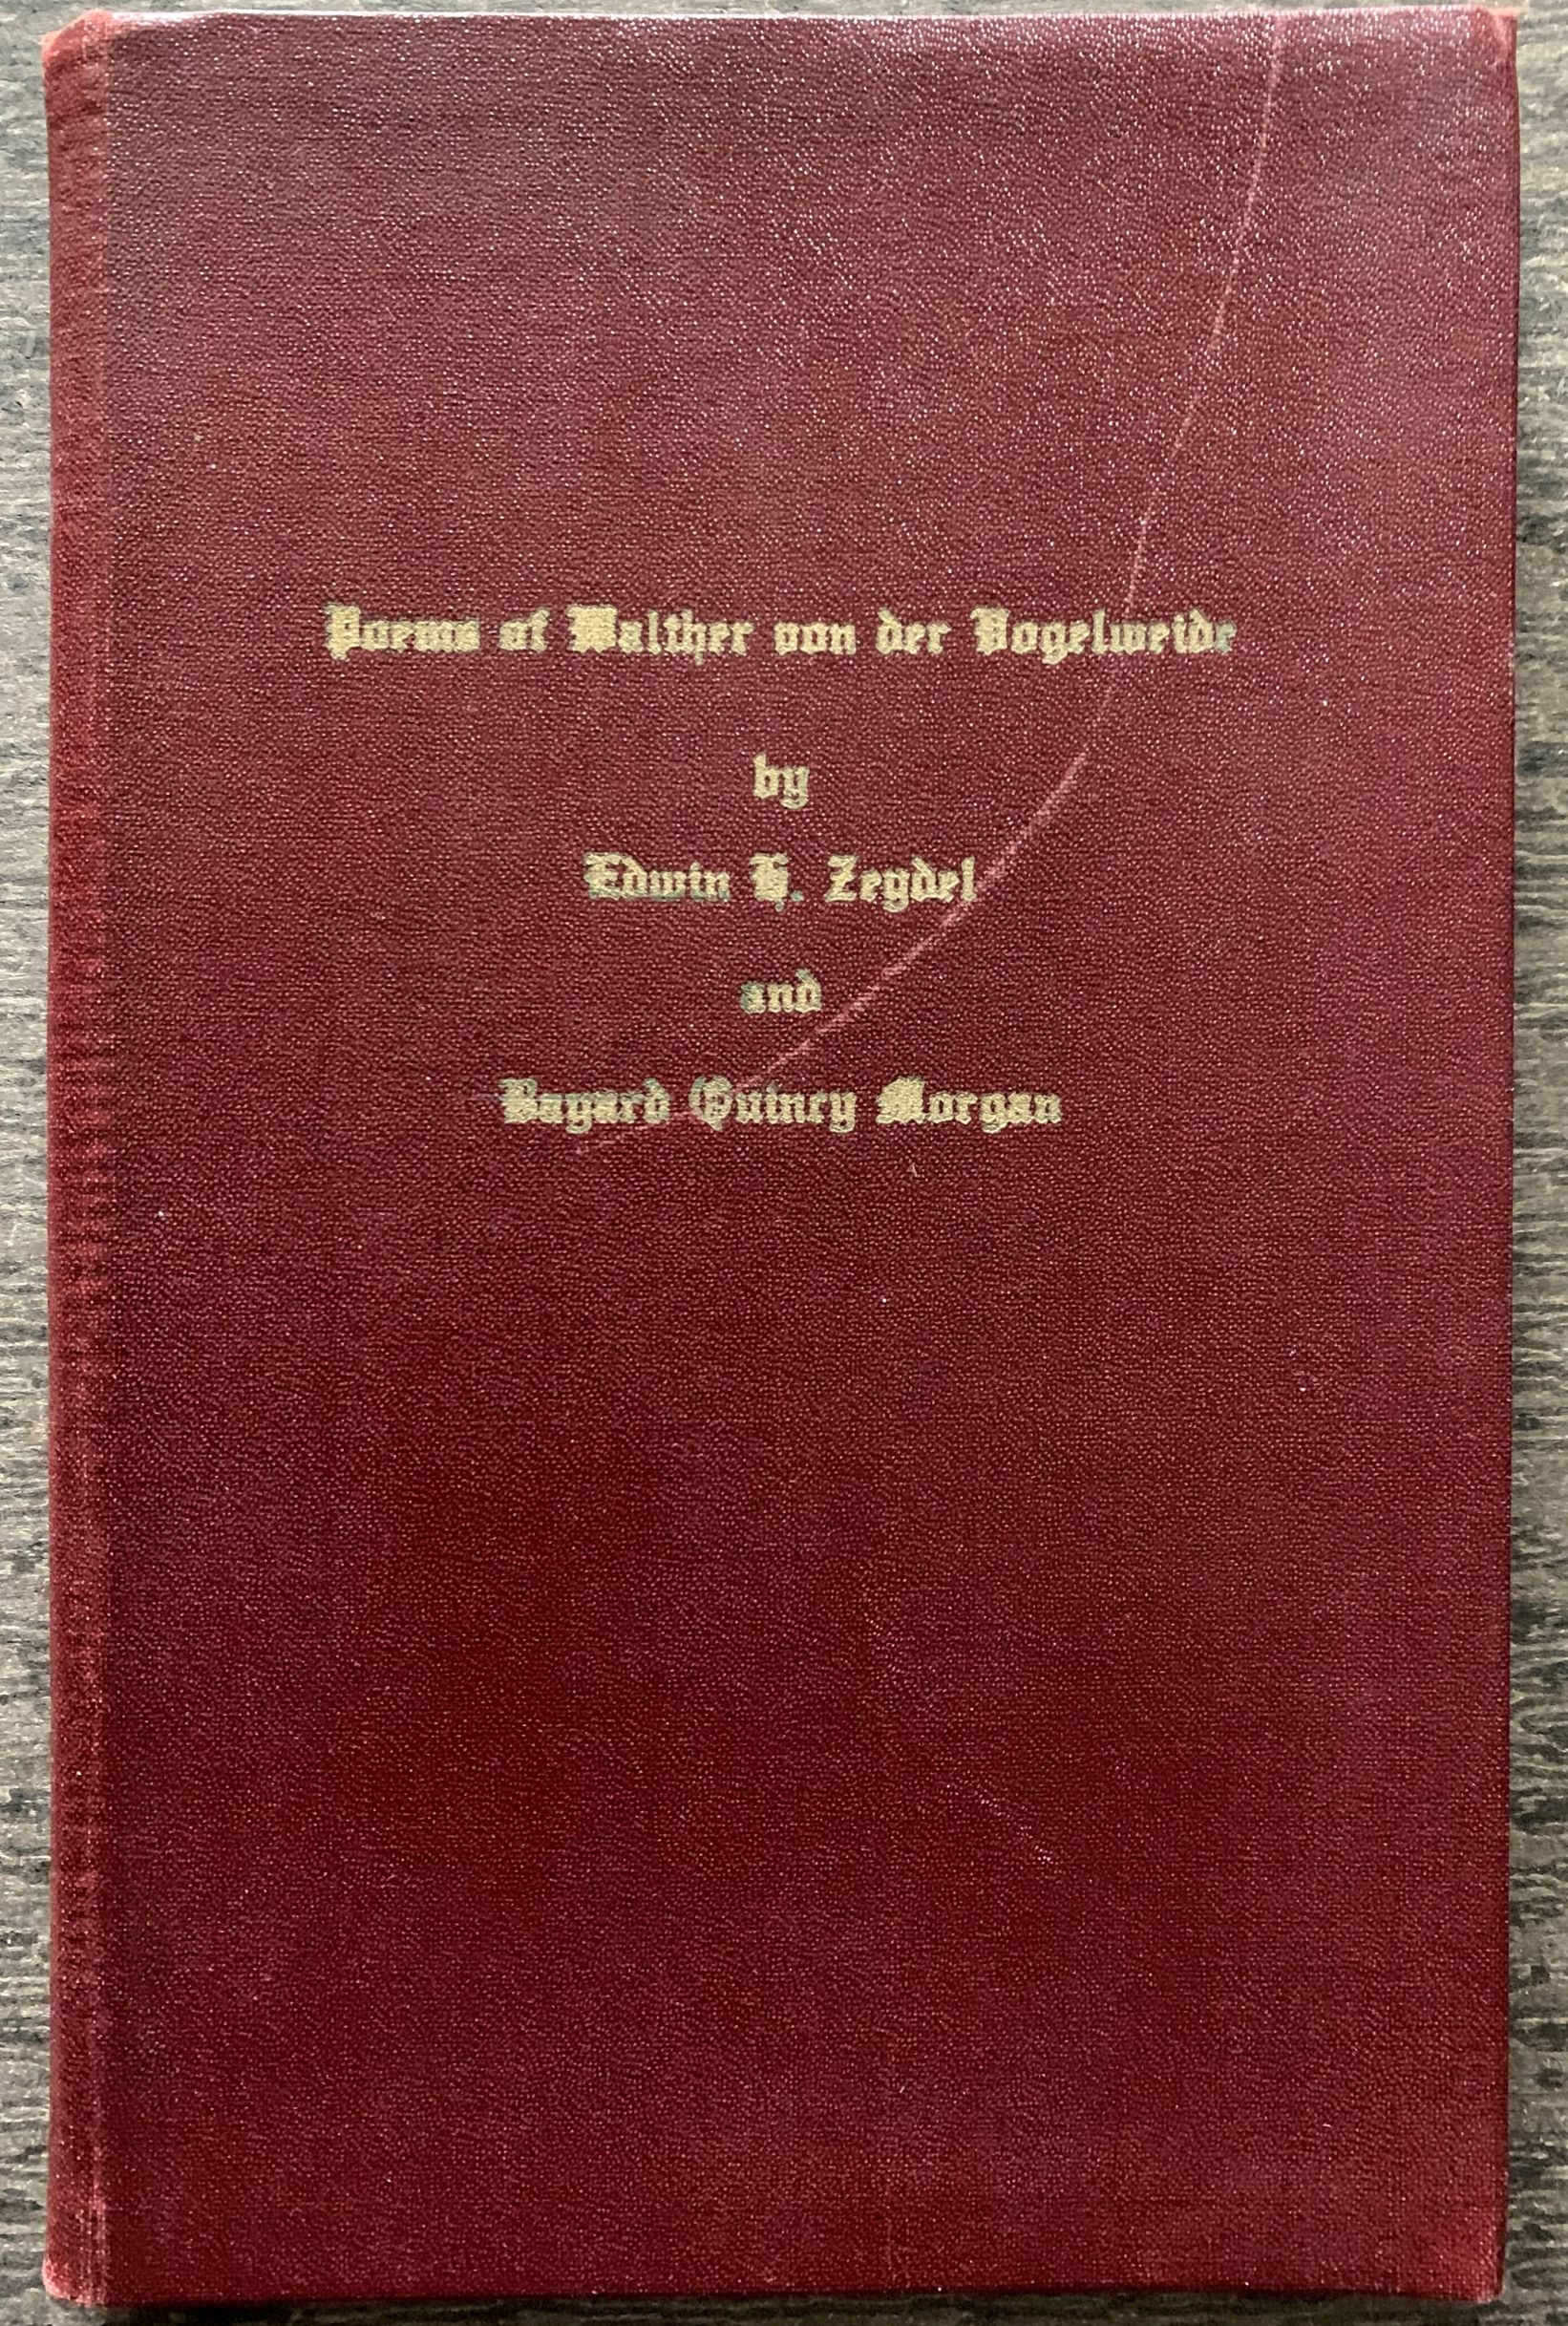 Image for Poems of Walther von der Vogelweide: Thirty New English Renderings in the Original Forms, with the Middle High German Texts, Selected Modern German Translations, and an Introduction by Edwin H. Zeydel and Bayard Quincy Morgan.